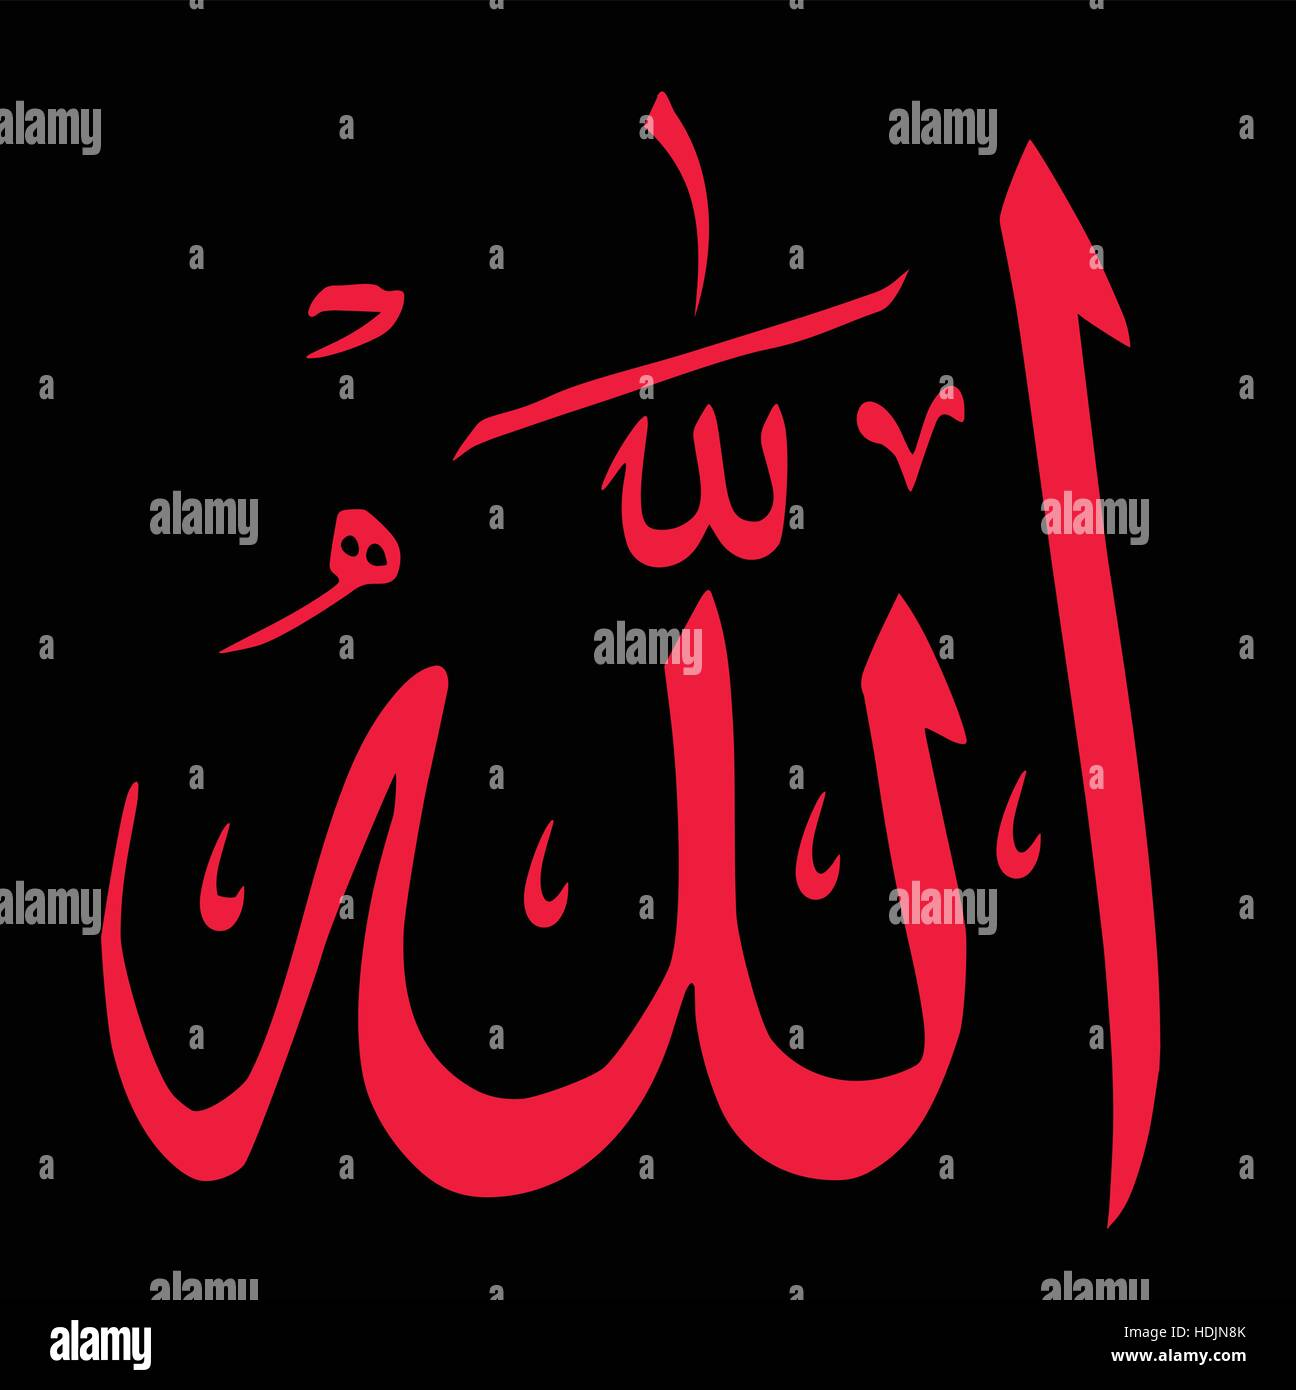 Name Of Allah In Arabic Script Over A Black Background